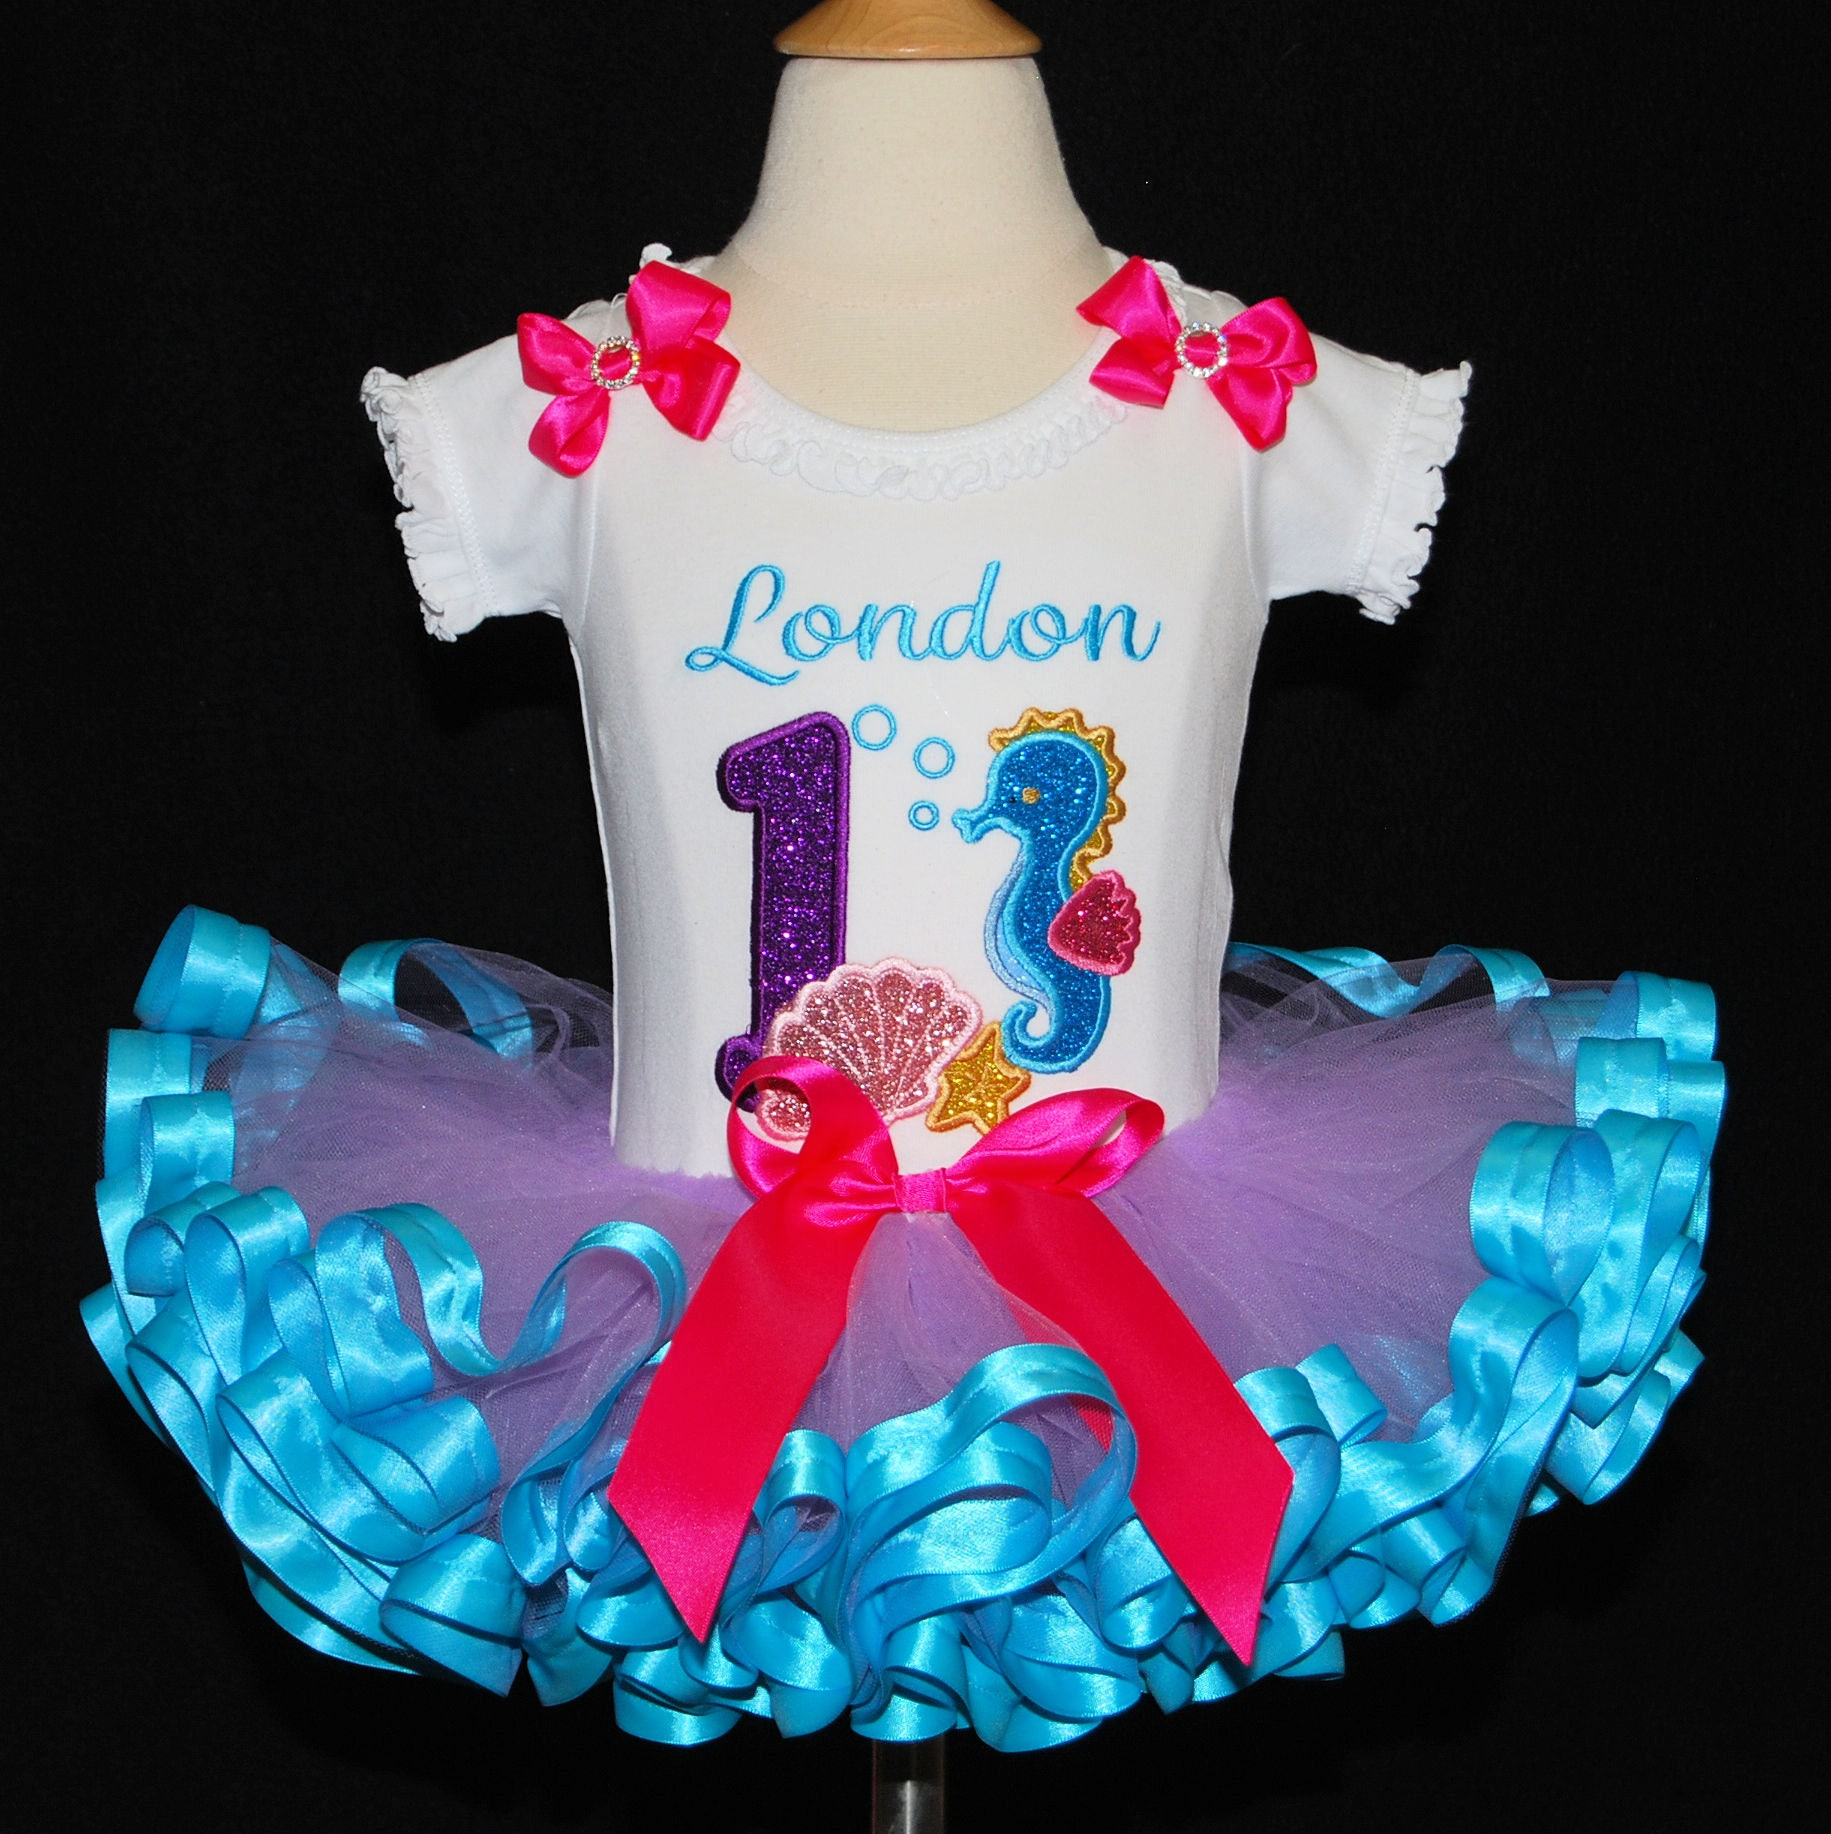 3de26f1d1 Sparkle under the sea, birthday outfit, first birthday tutu outfit,  personalized birthday outfit